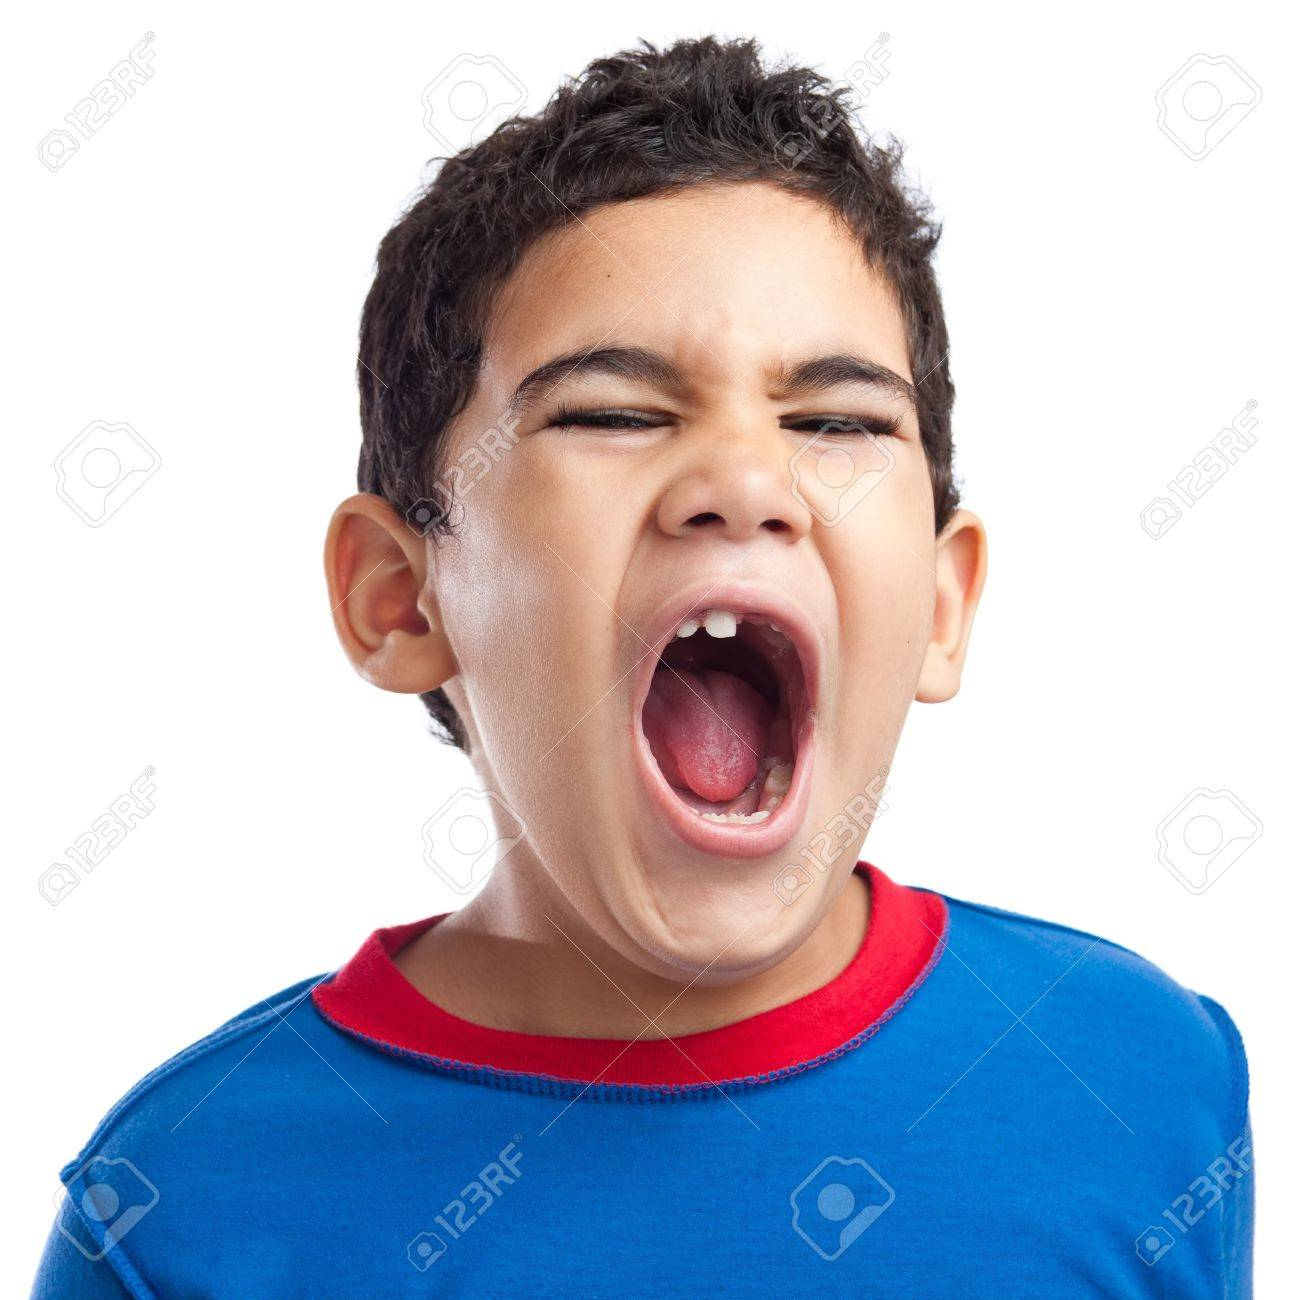 latin boy screaming with anger on a white background stock photo